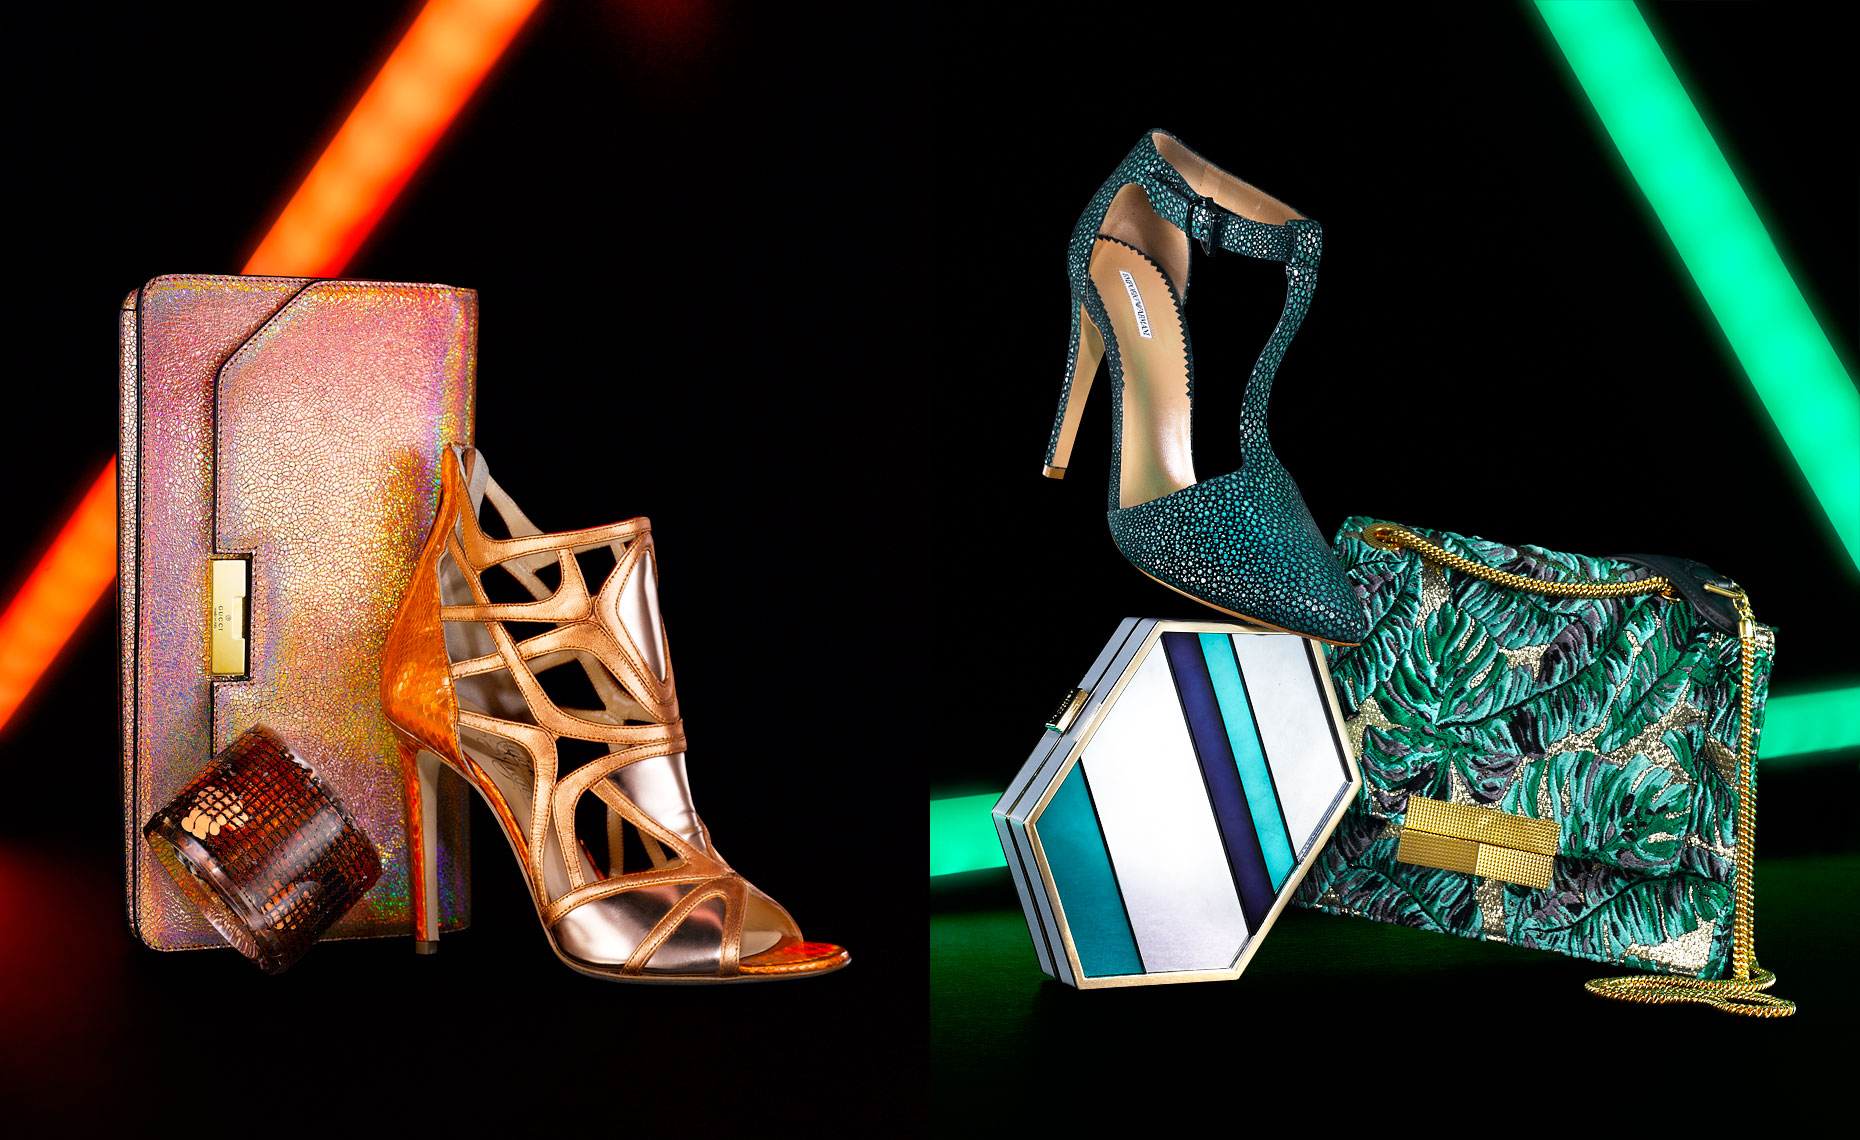 Shoes and Clutches with Neon